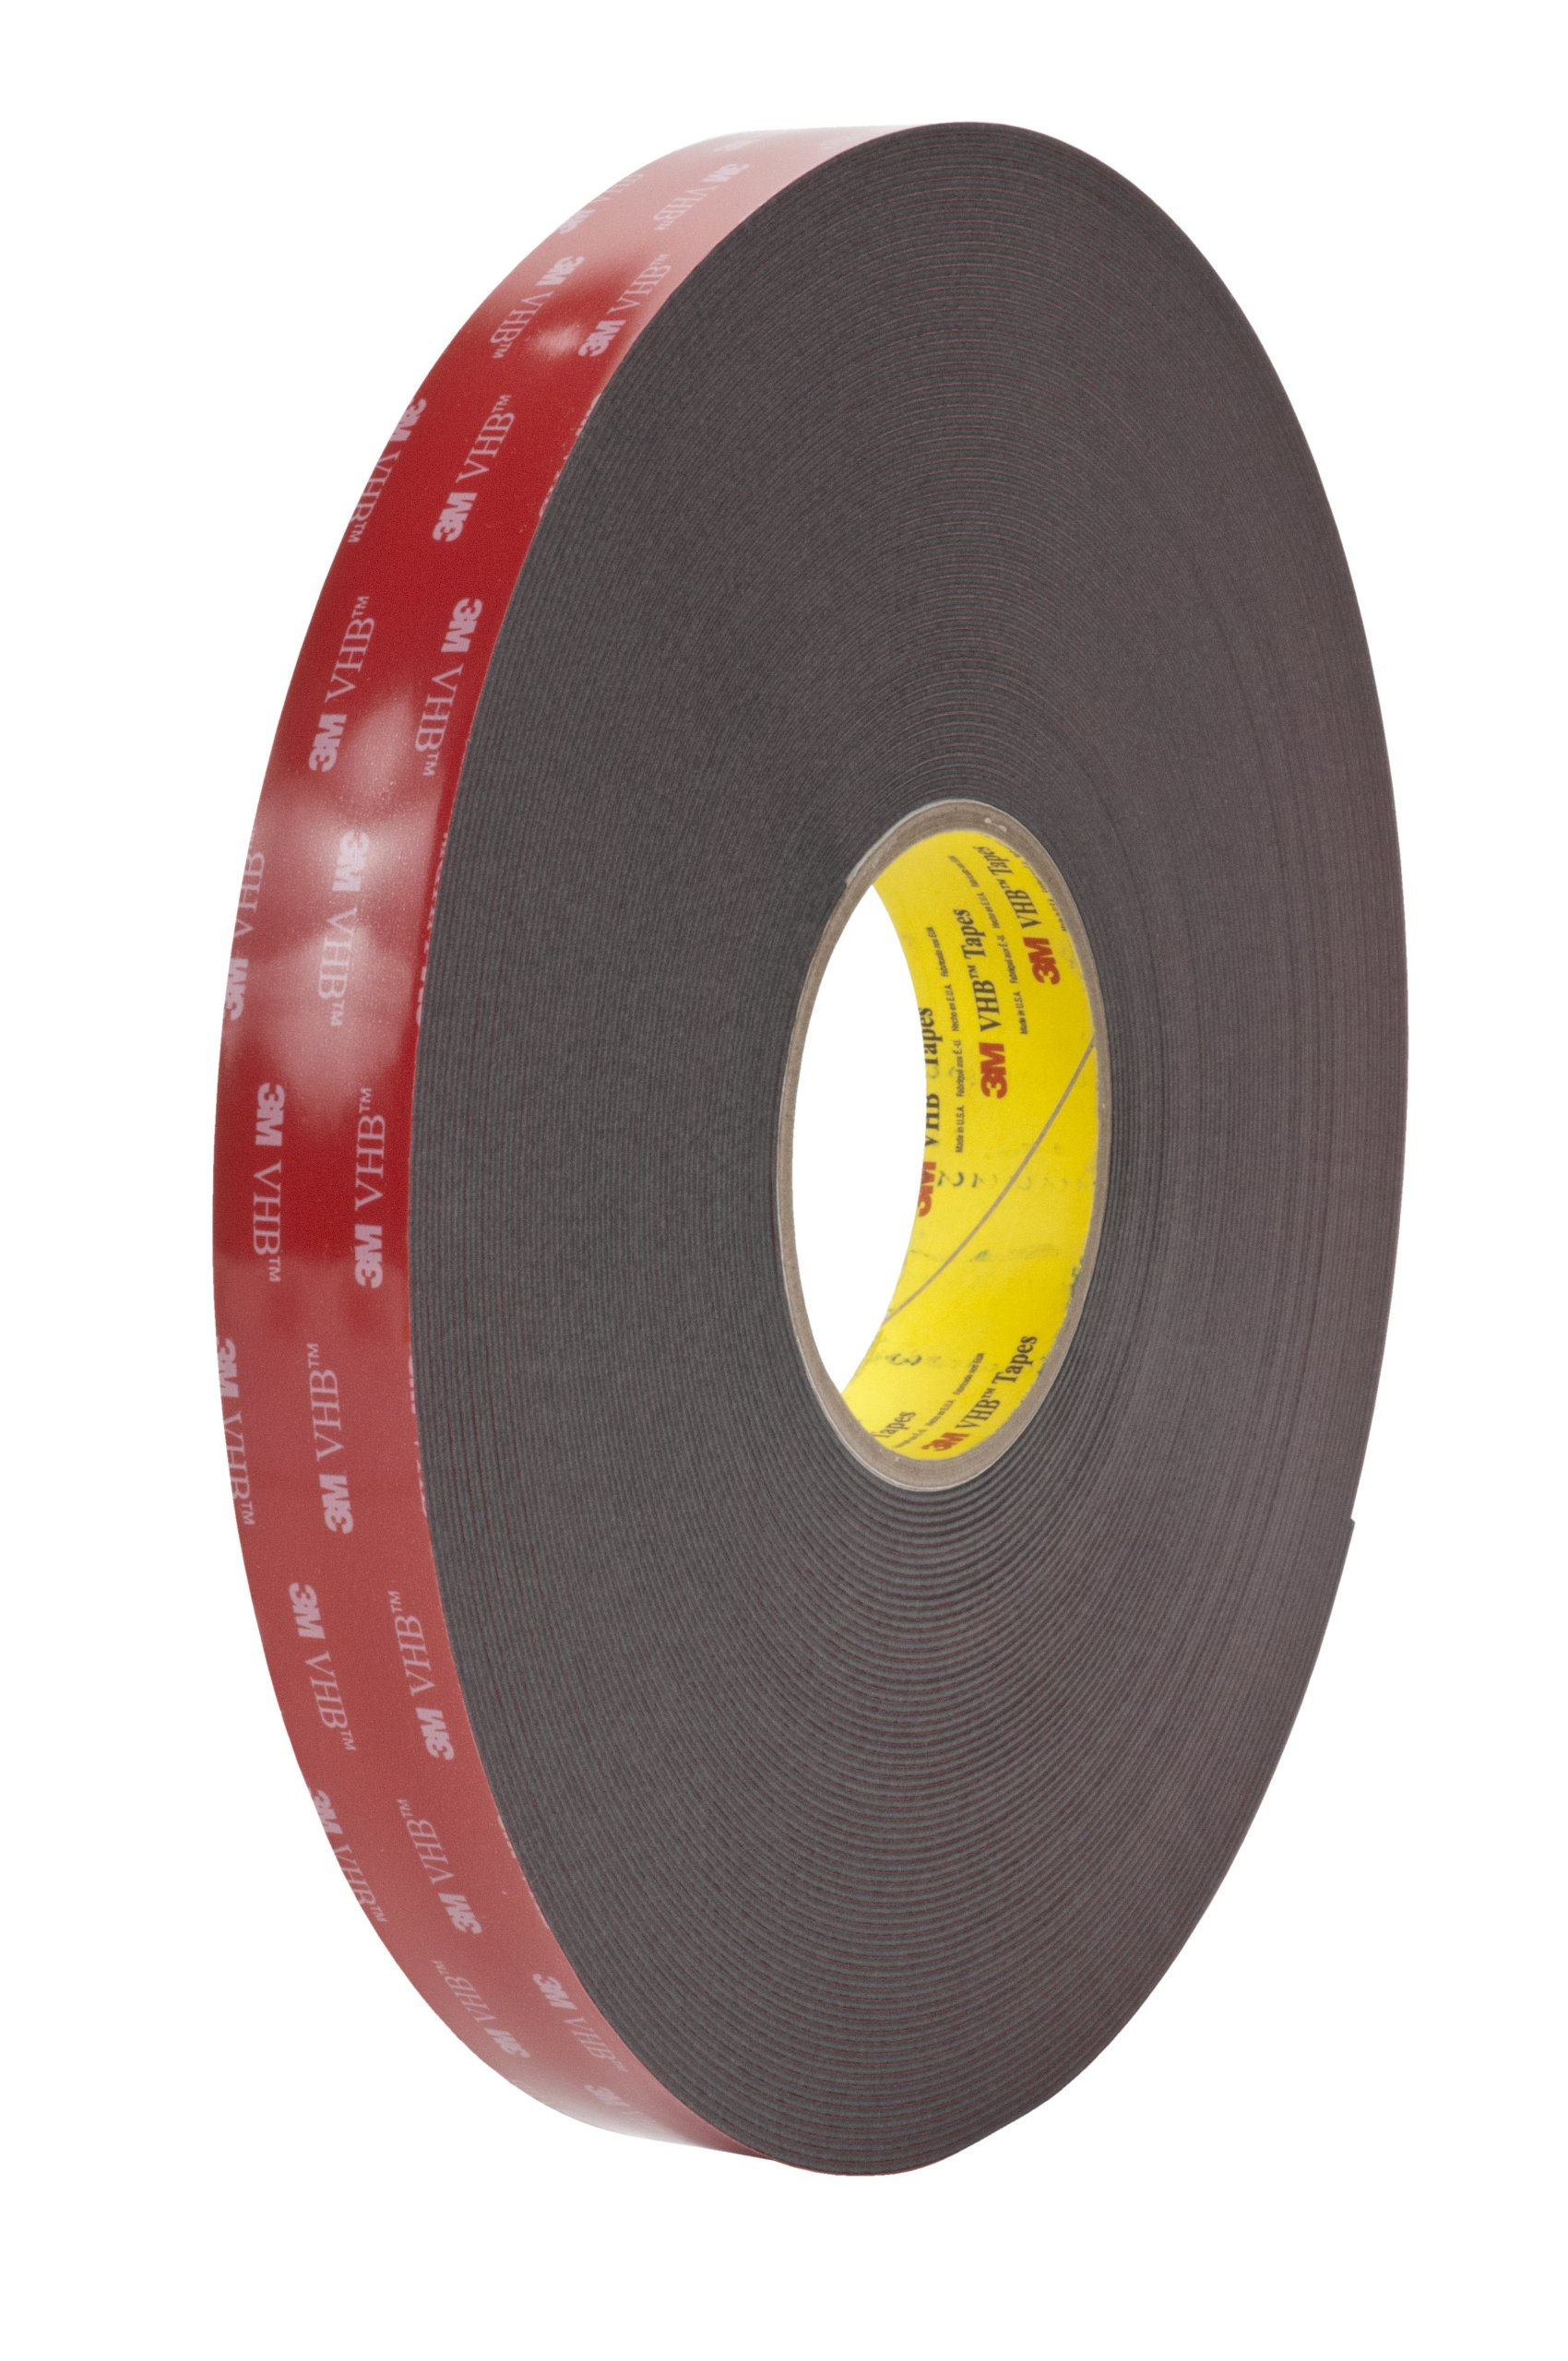 3M VHB Tape 5952 Black Small Pack, 3/4 in x 36 yd 45.0 mil (Case of 3)